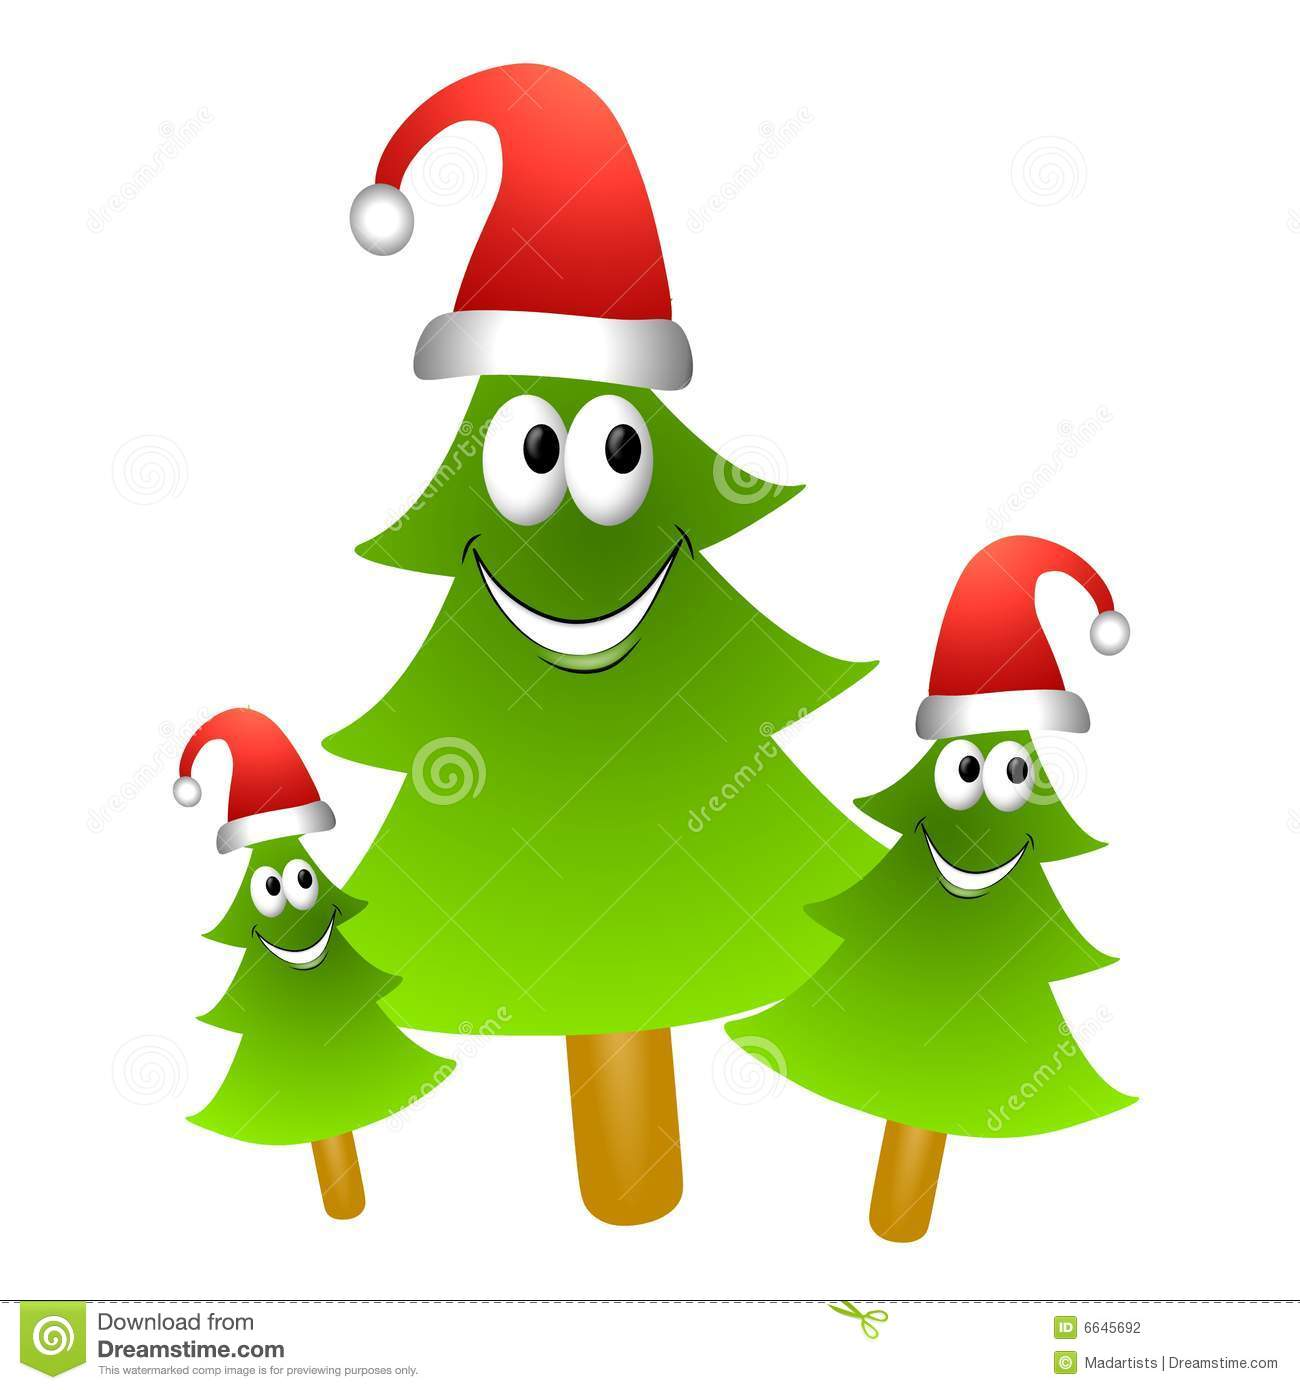 download cartoon christmas tree group 2 stock illustration illustration of holidays graphics 6645692 - Christmas Cartoon Pictures